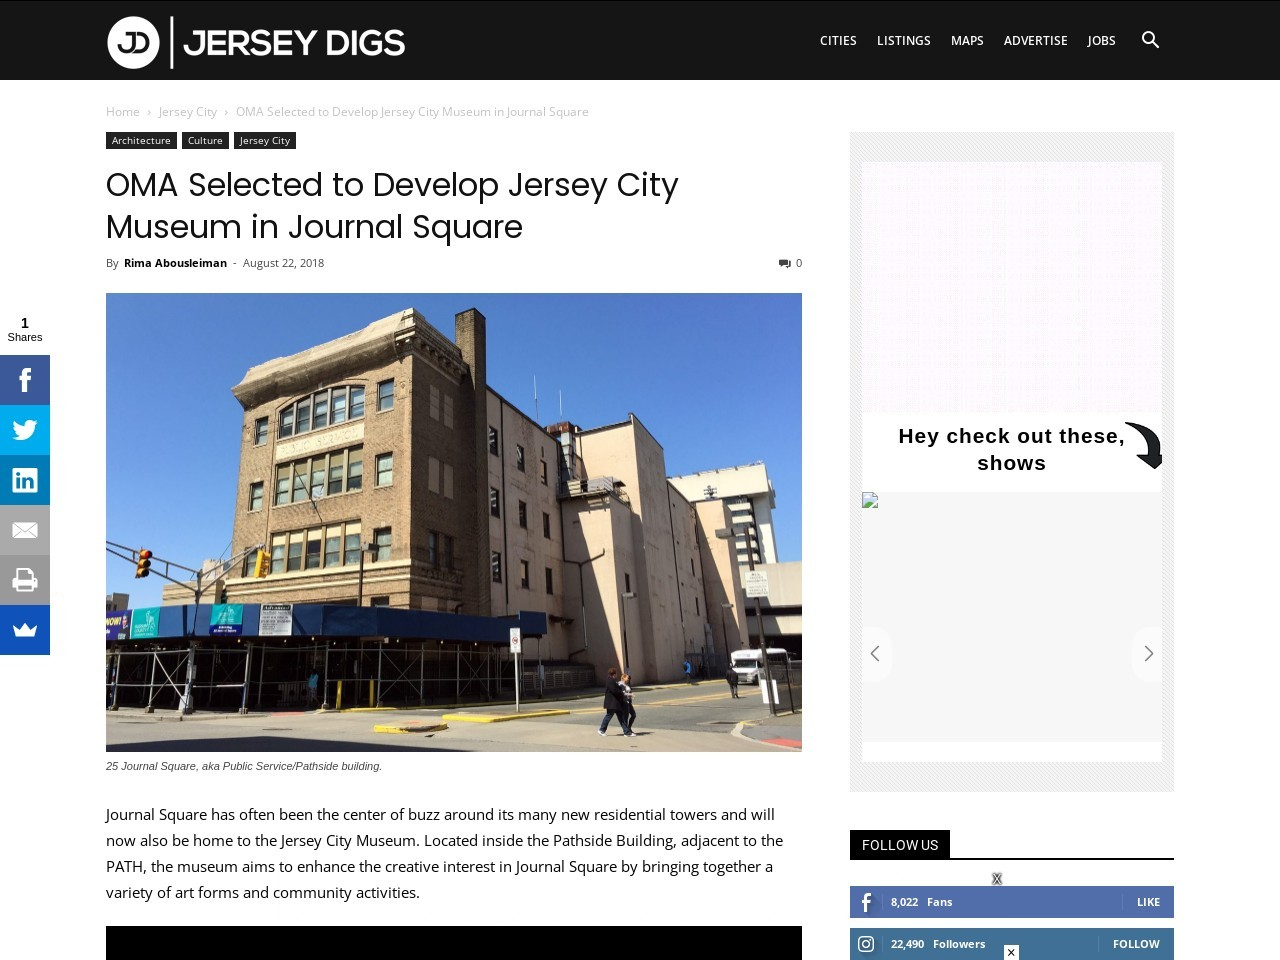 OMA Selected to Develop Jersey City Museum in Journal Square